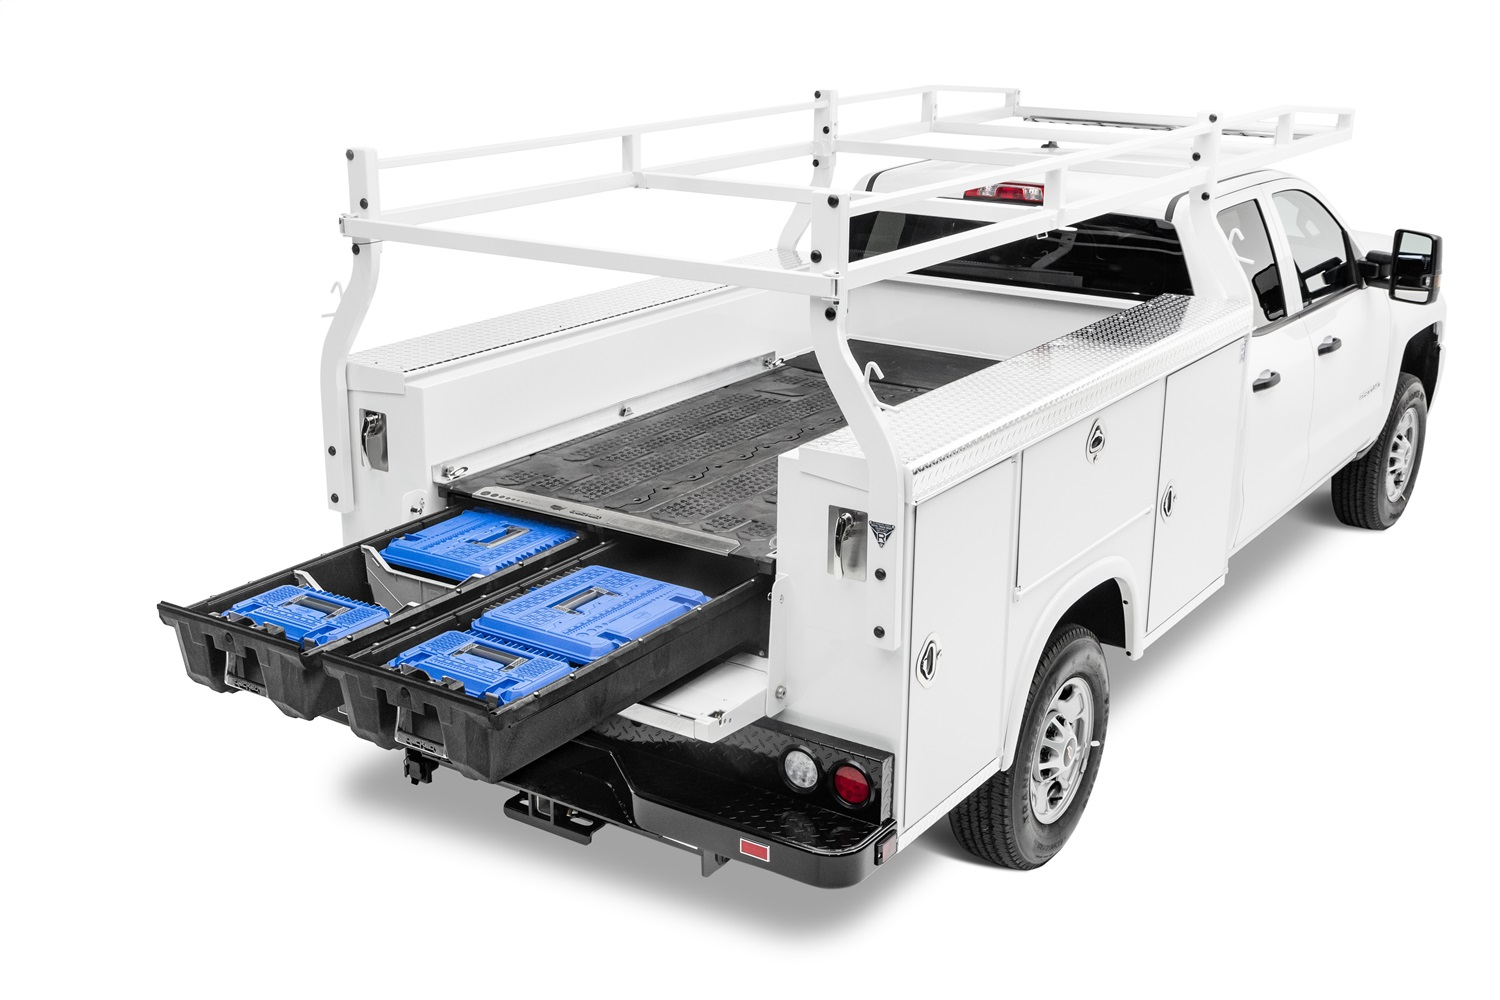 Service Body Truck Bed Storage System, 48 in. To 51 in. Width, For Use w/80 in. To 96 in. Beds, Fully Assembled